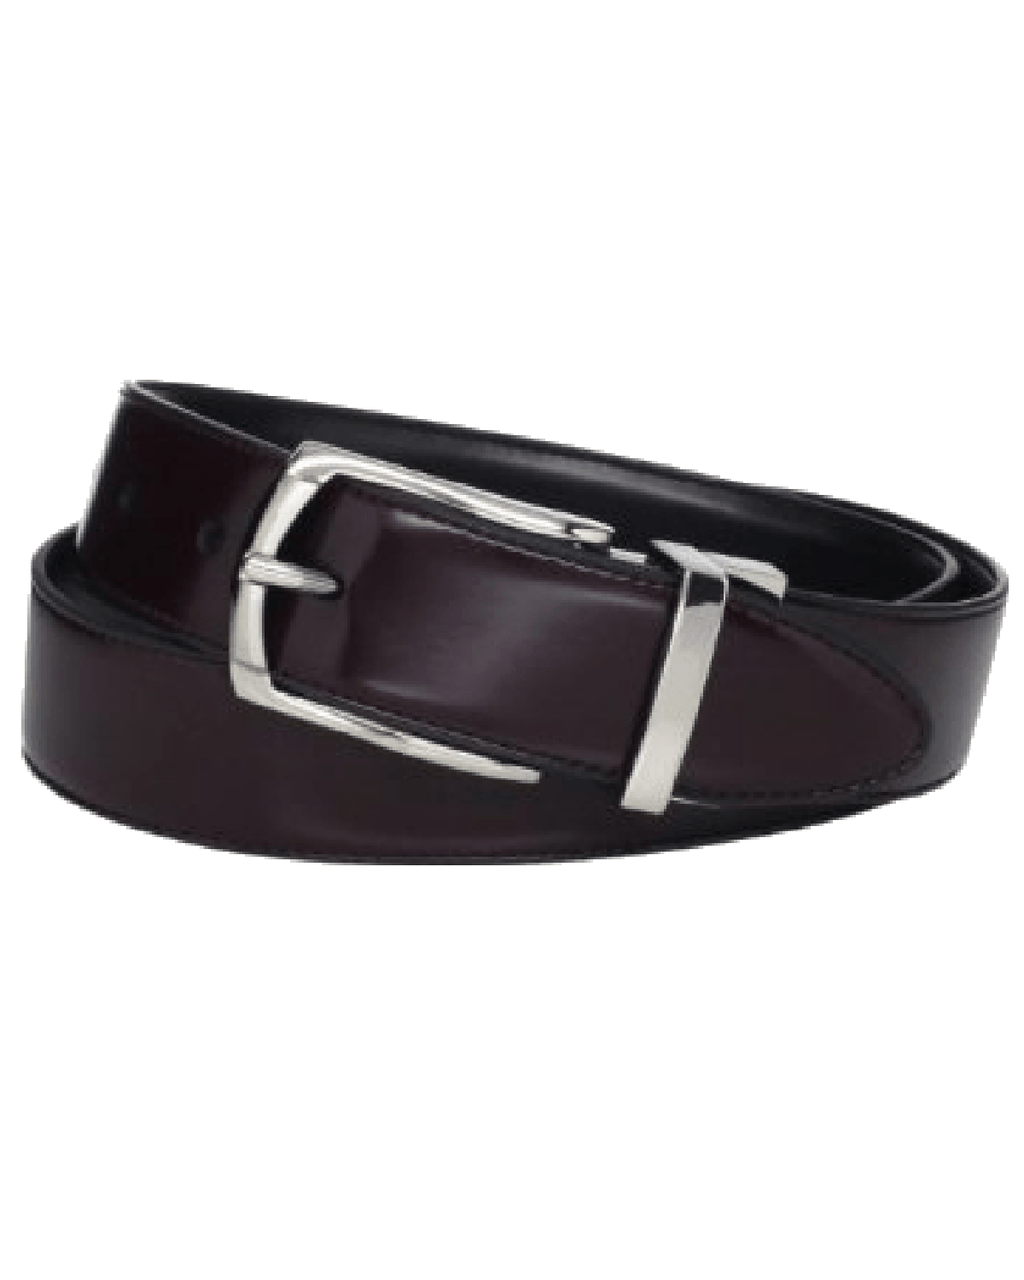 Geoffrey Beene Glazed Reversible Belt-GEOFFREY BEENE-Fashionbarn shop